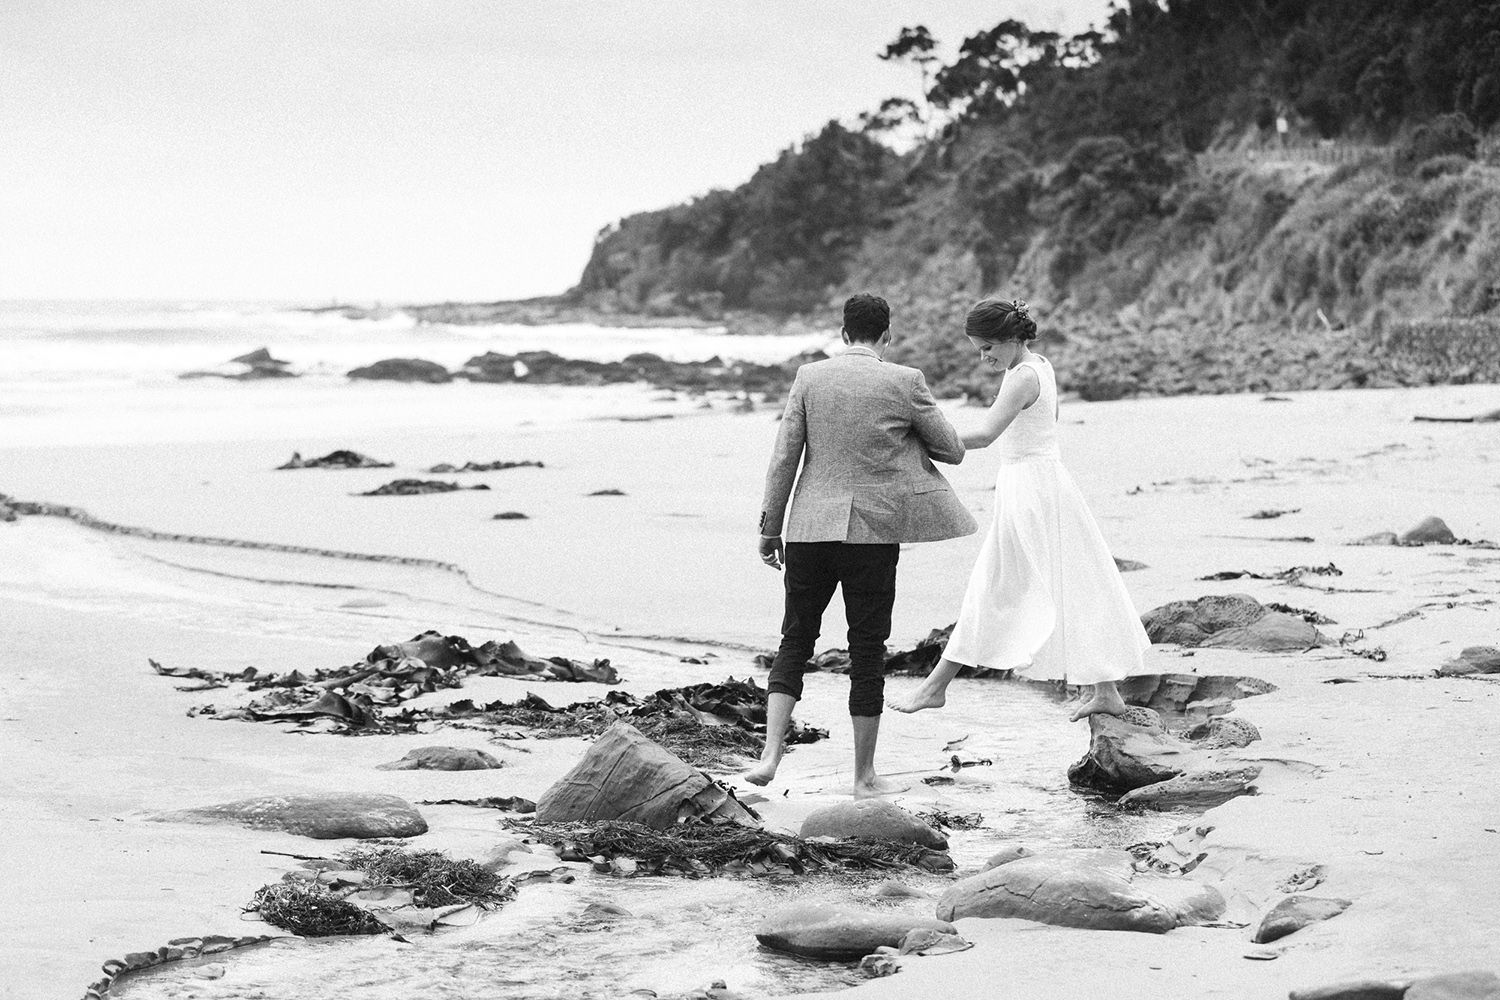 Cloe & Zac - Caroline captured our day beautifully and was really flexible and relaxed to work with!